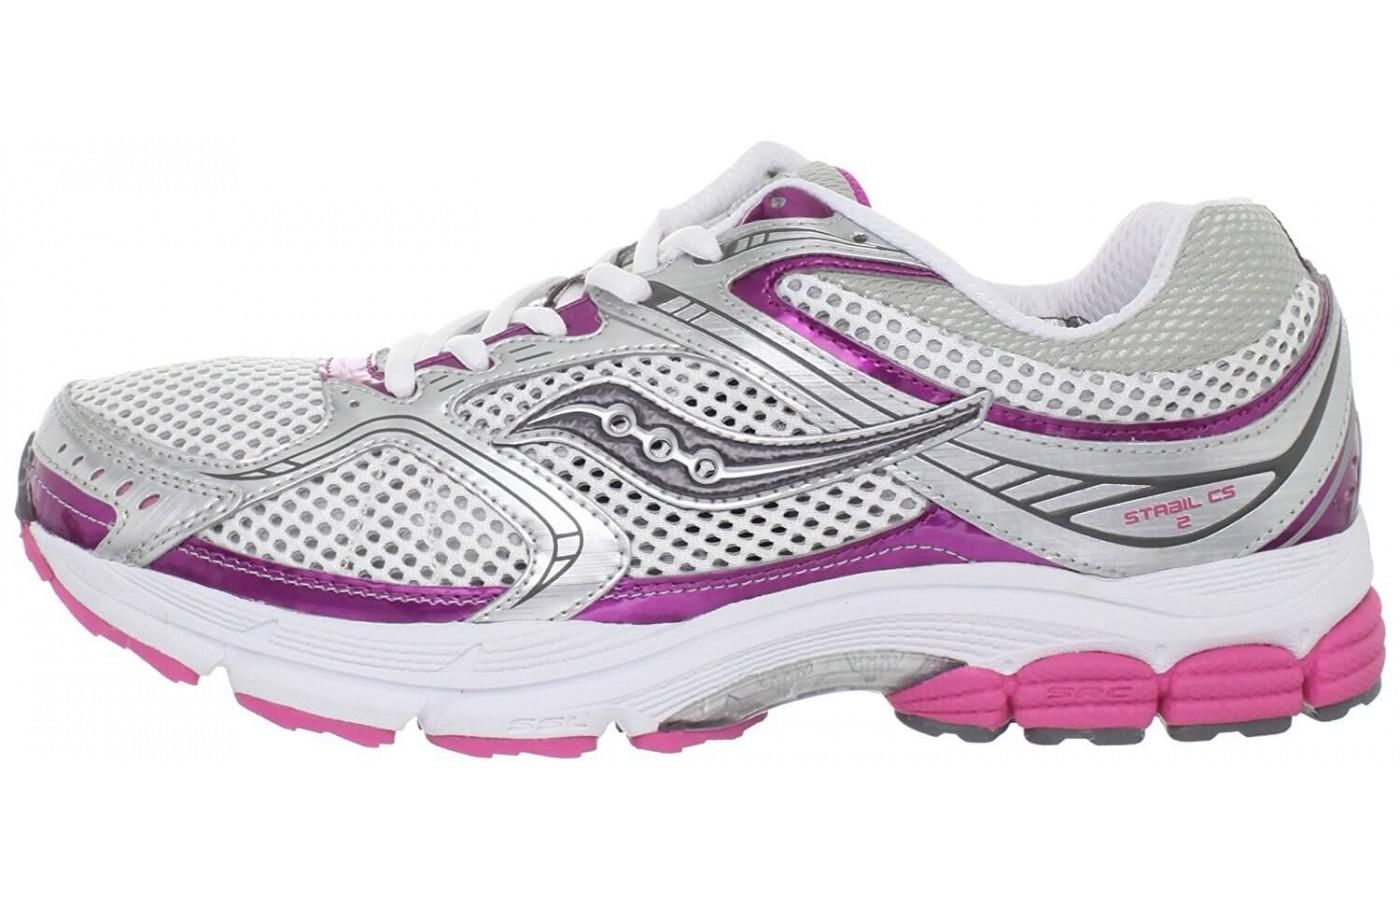 The style of the Saucony Stabil CS2 on display